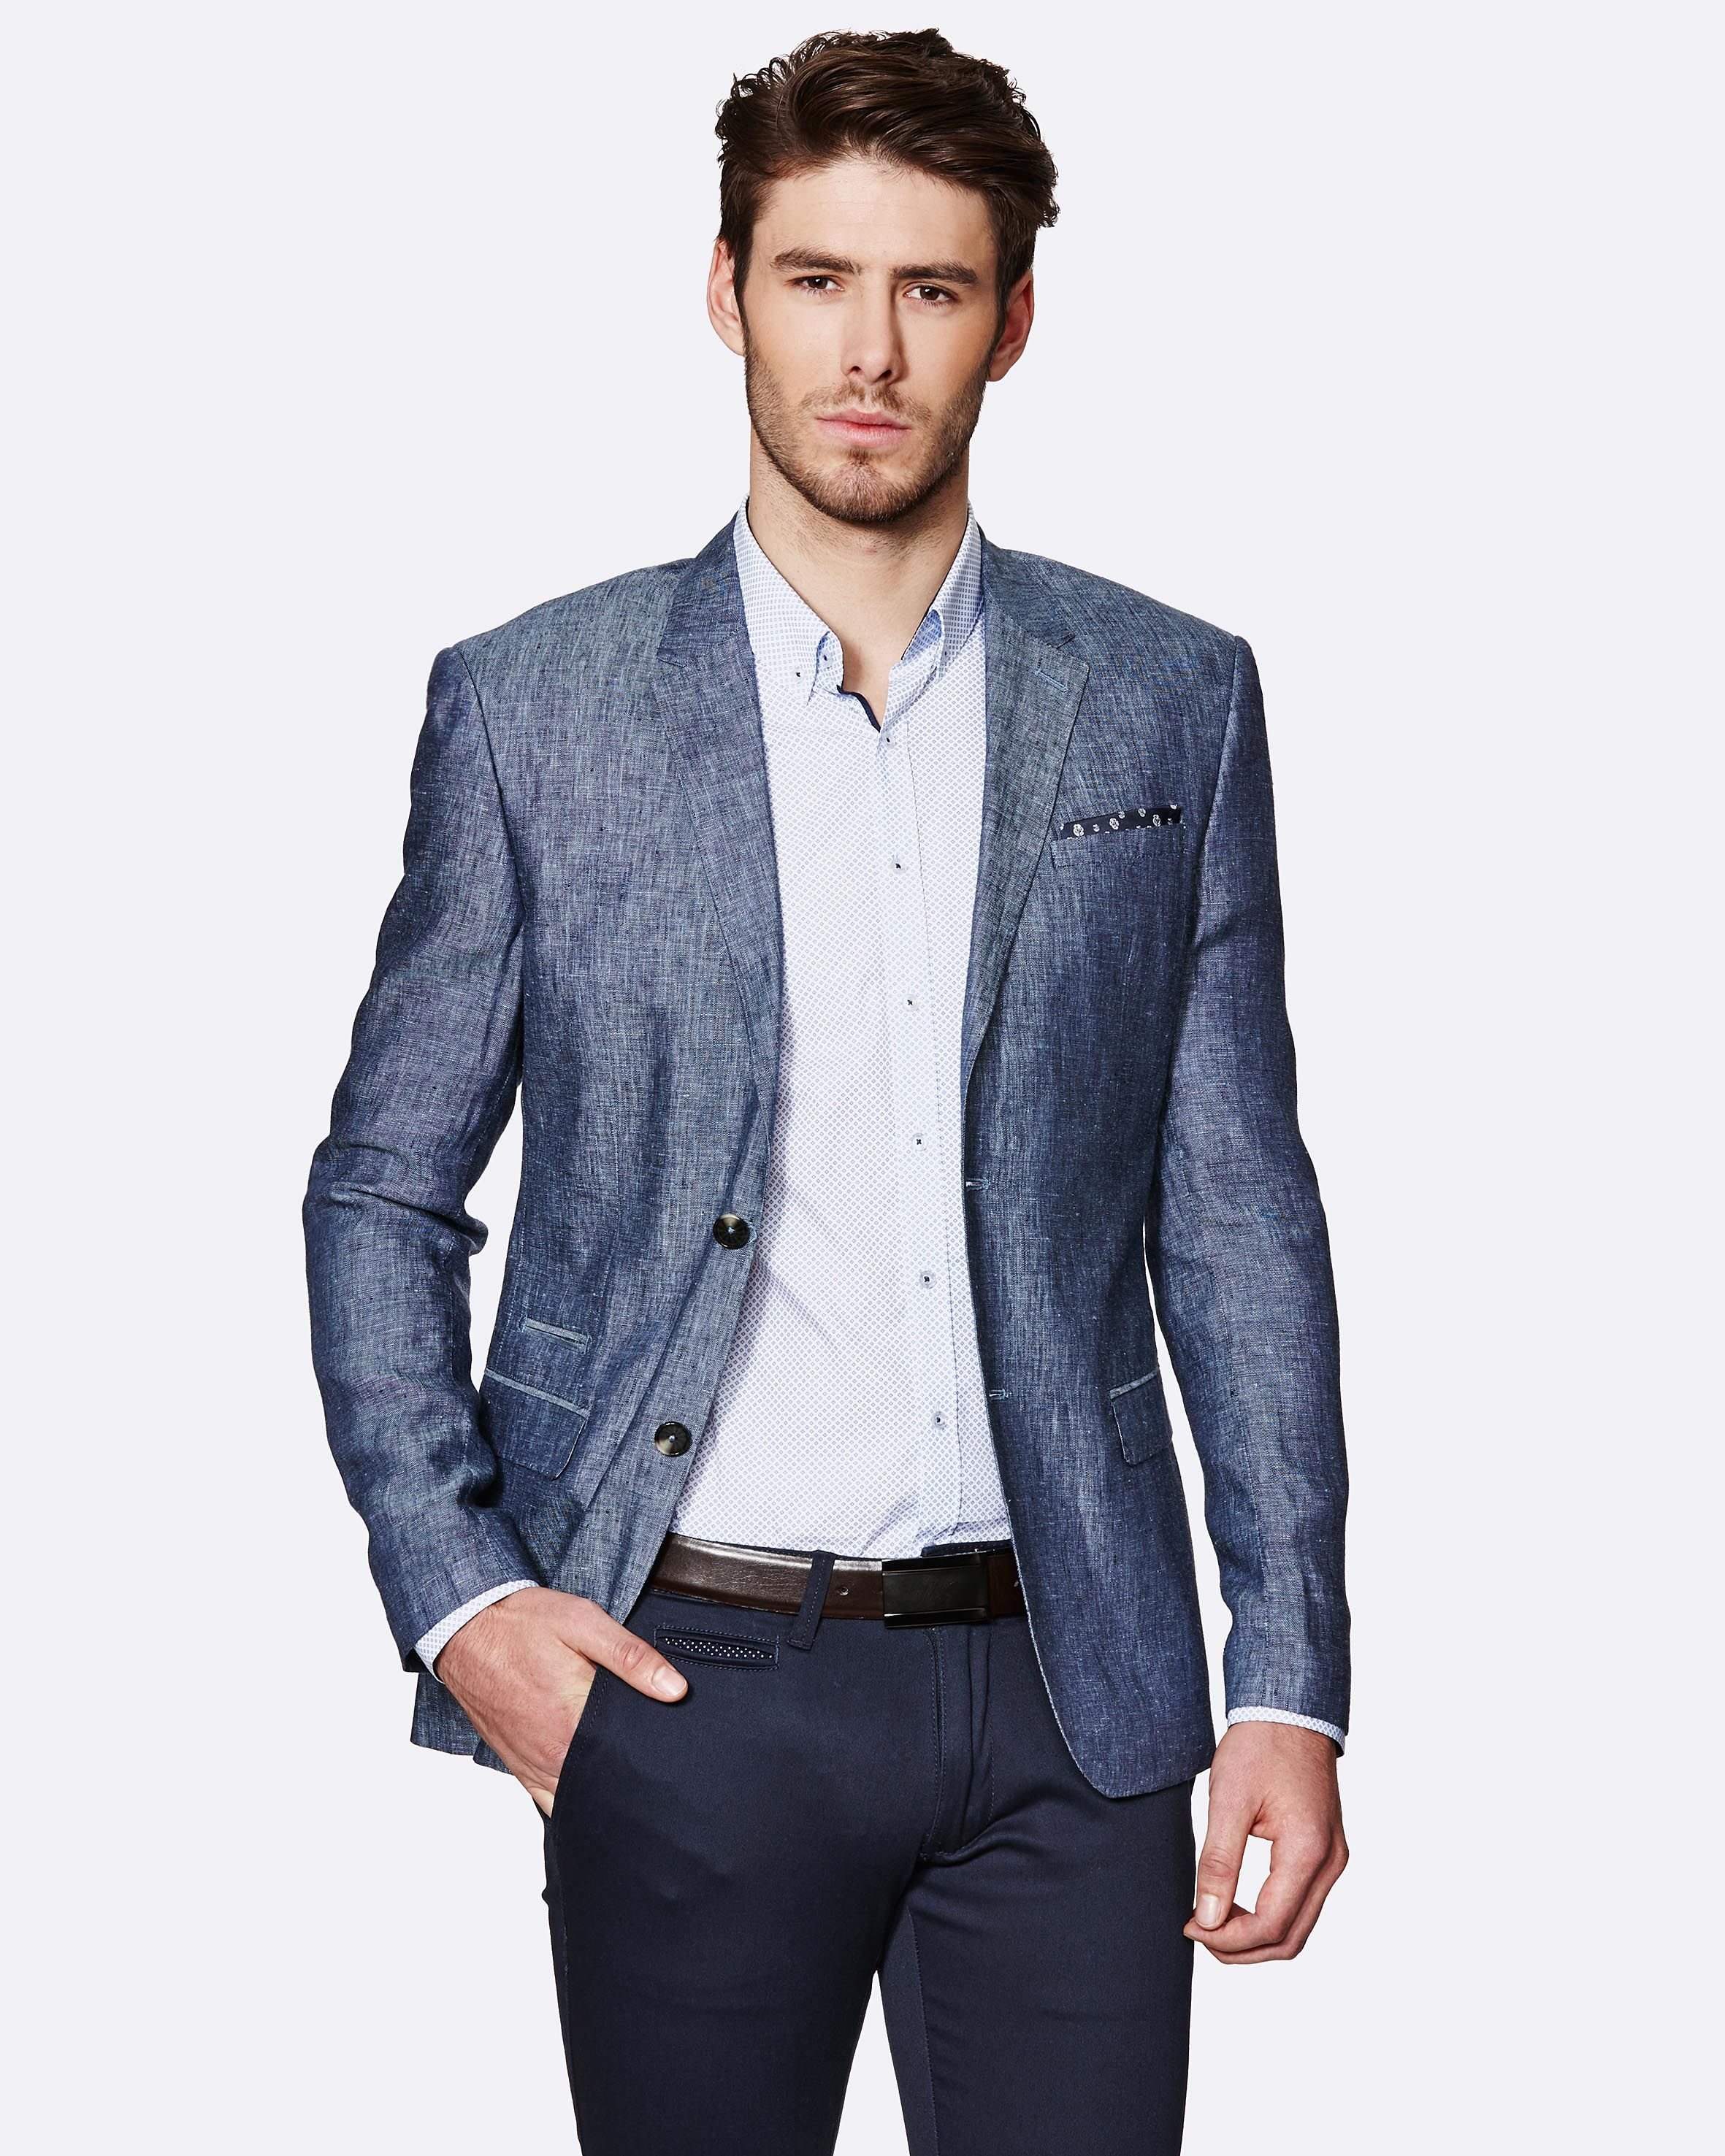 Ralph Lauren ♥ All the way - Bob Trotta is a high end, men's fashion consultant Find this Pin and more on Men's Smart Casual Style by Fabuliss™. Season Jackets - Sharp Ralph Lauren look for men.